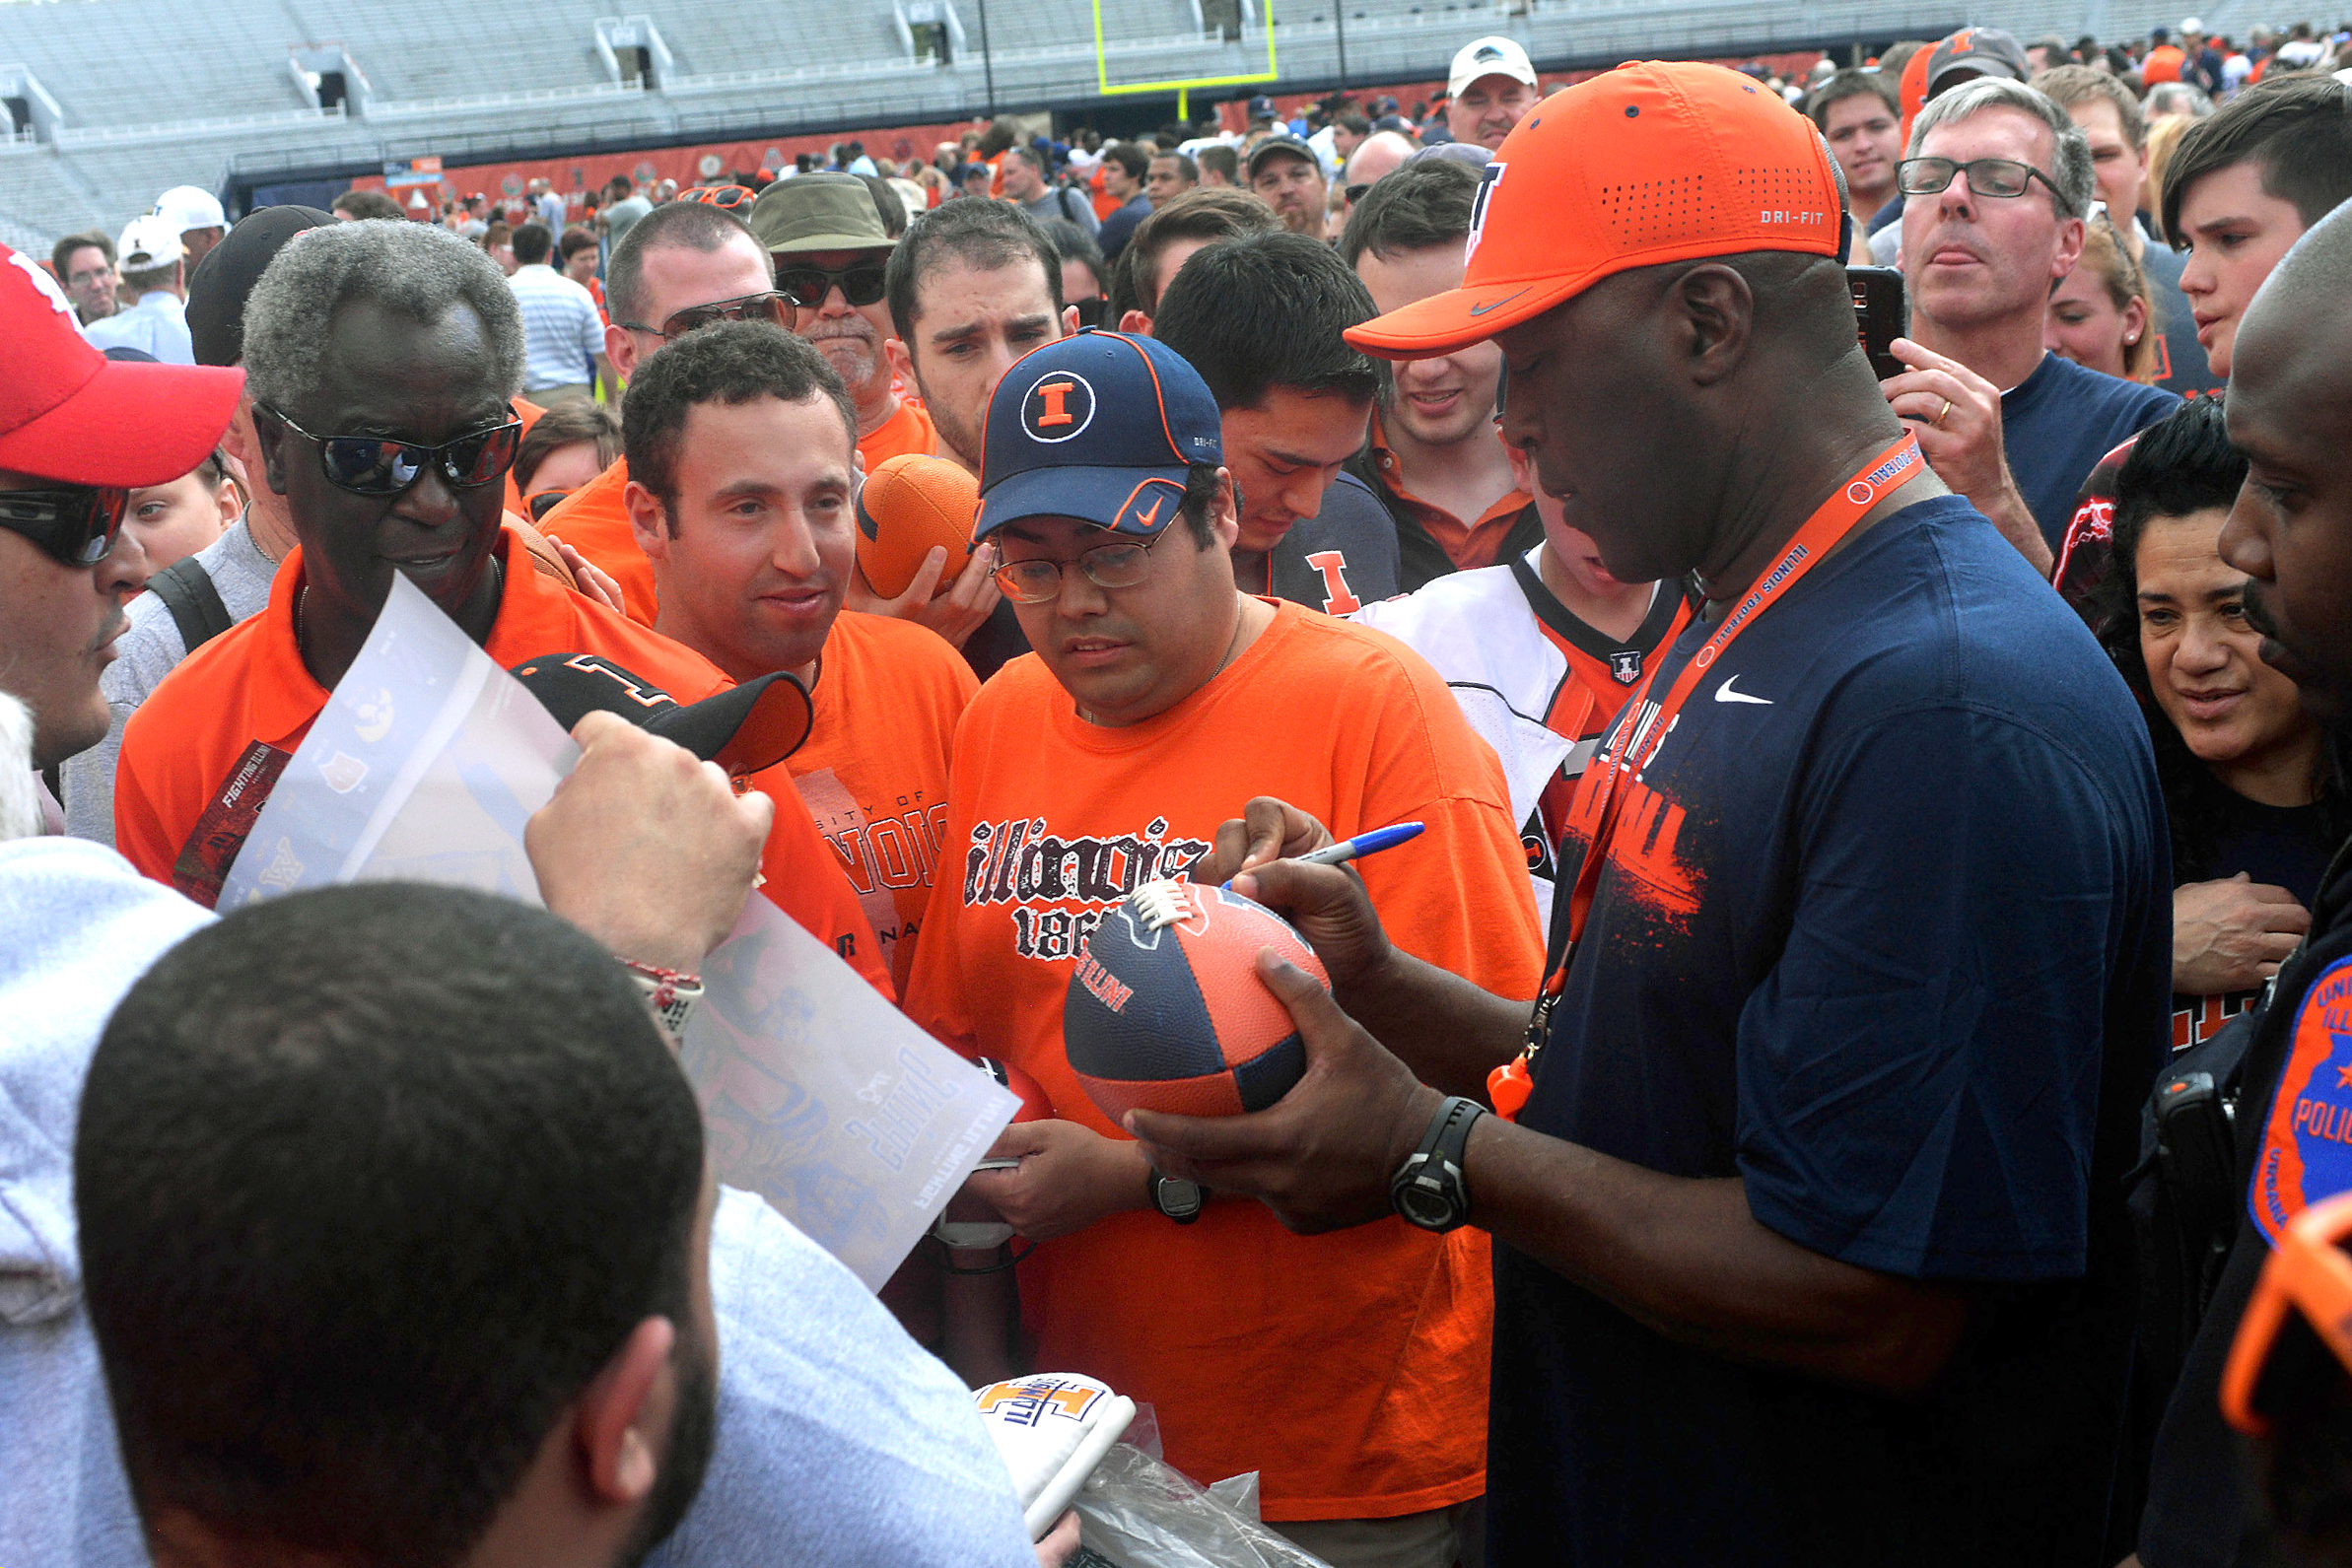 Illinois Fighting Illini Head Coach Lovie Smith signs autographs after the Spring football game at Memorial Stadium in Champaign, Illinois.